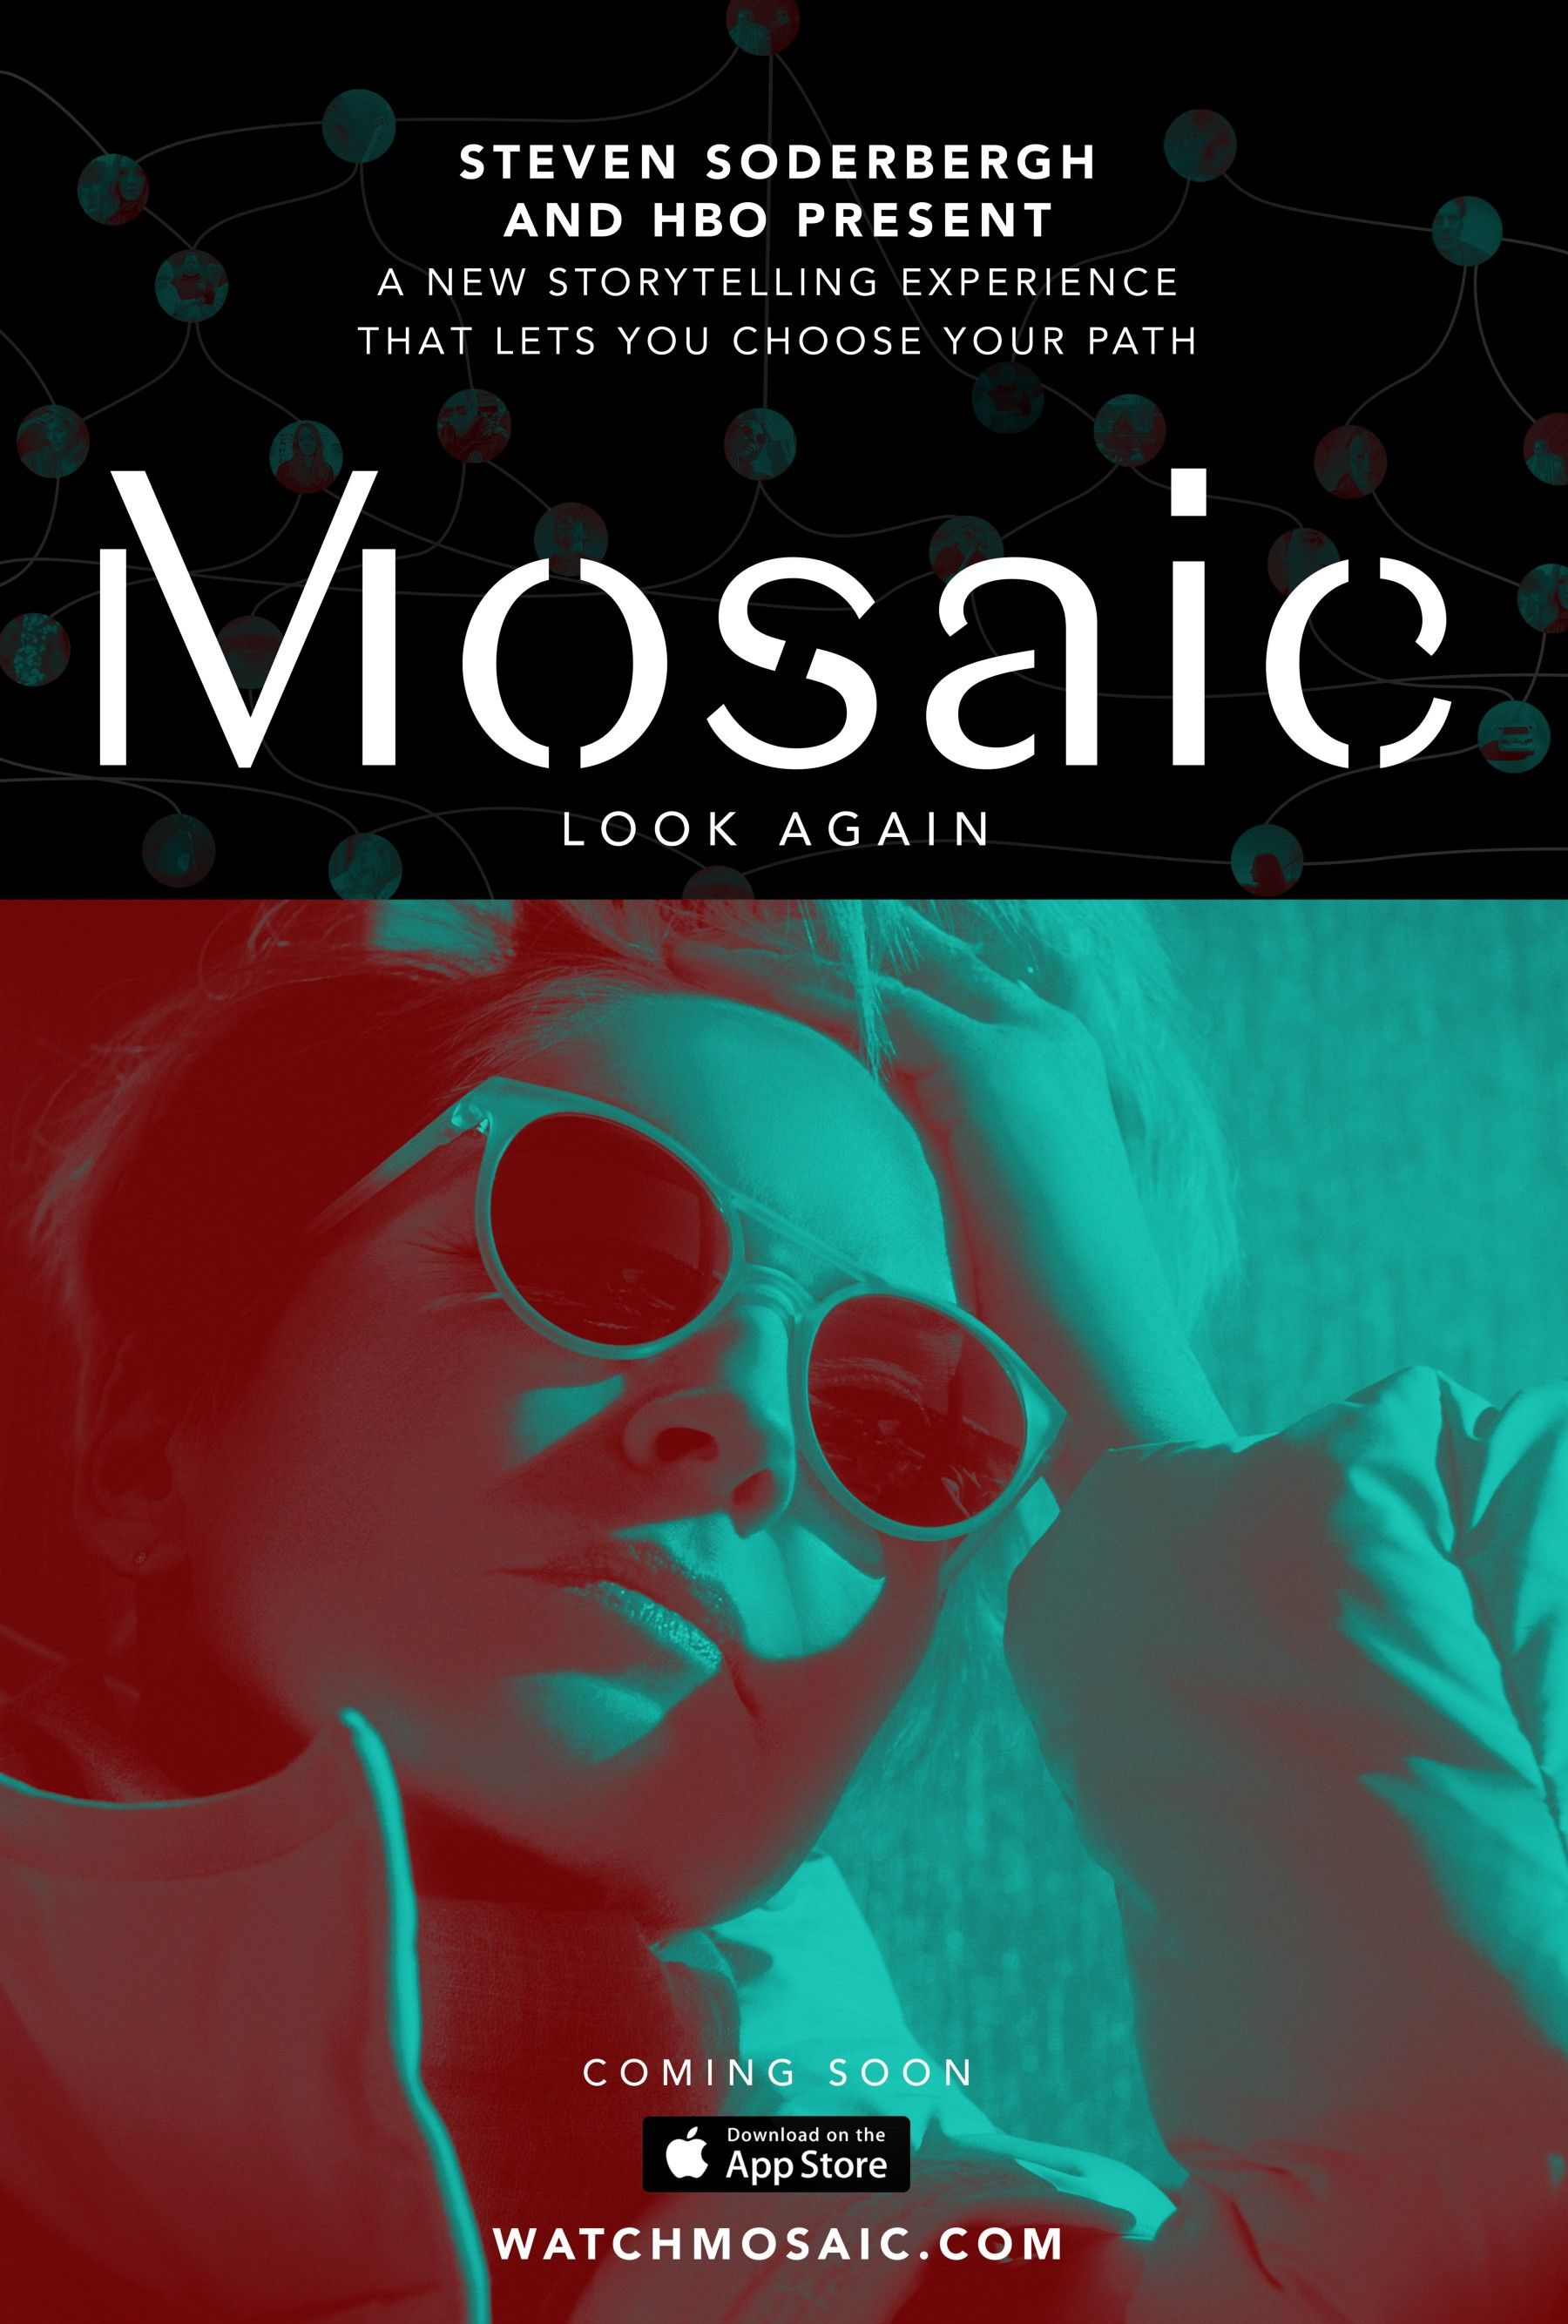 Mosaic Trailer And App Innovative And Geeky Yet To Be Launched